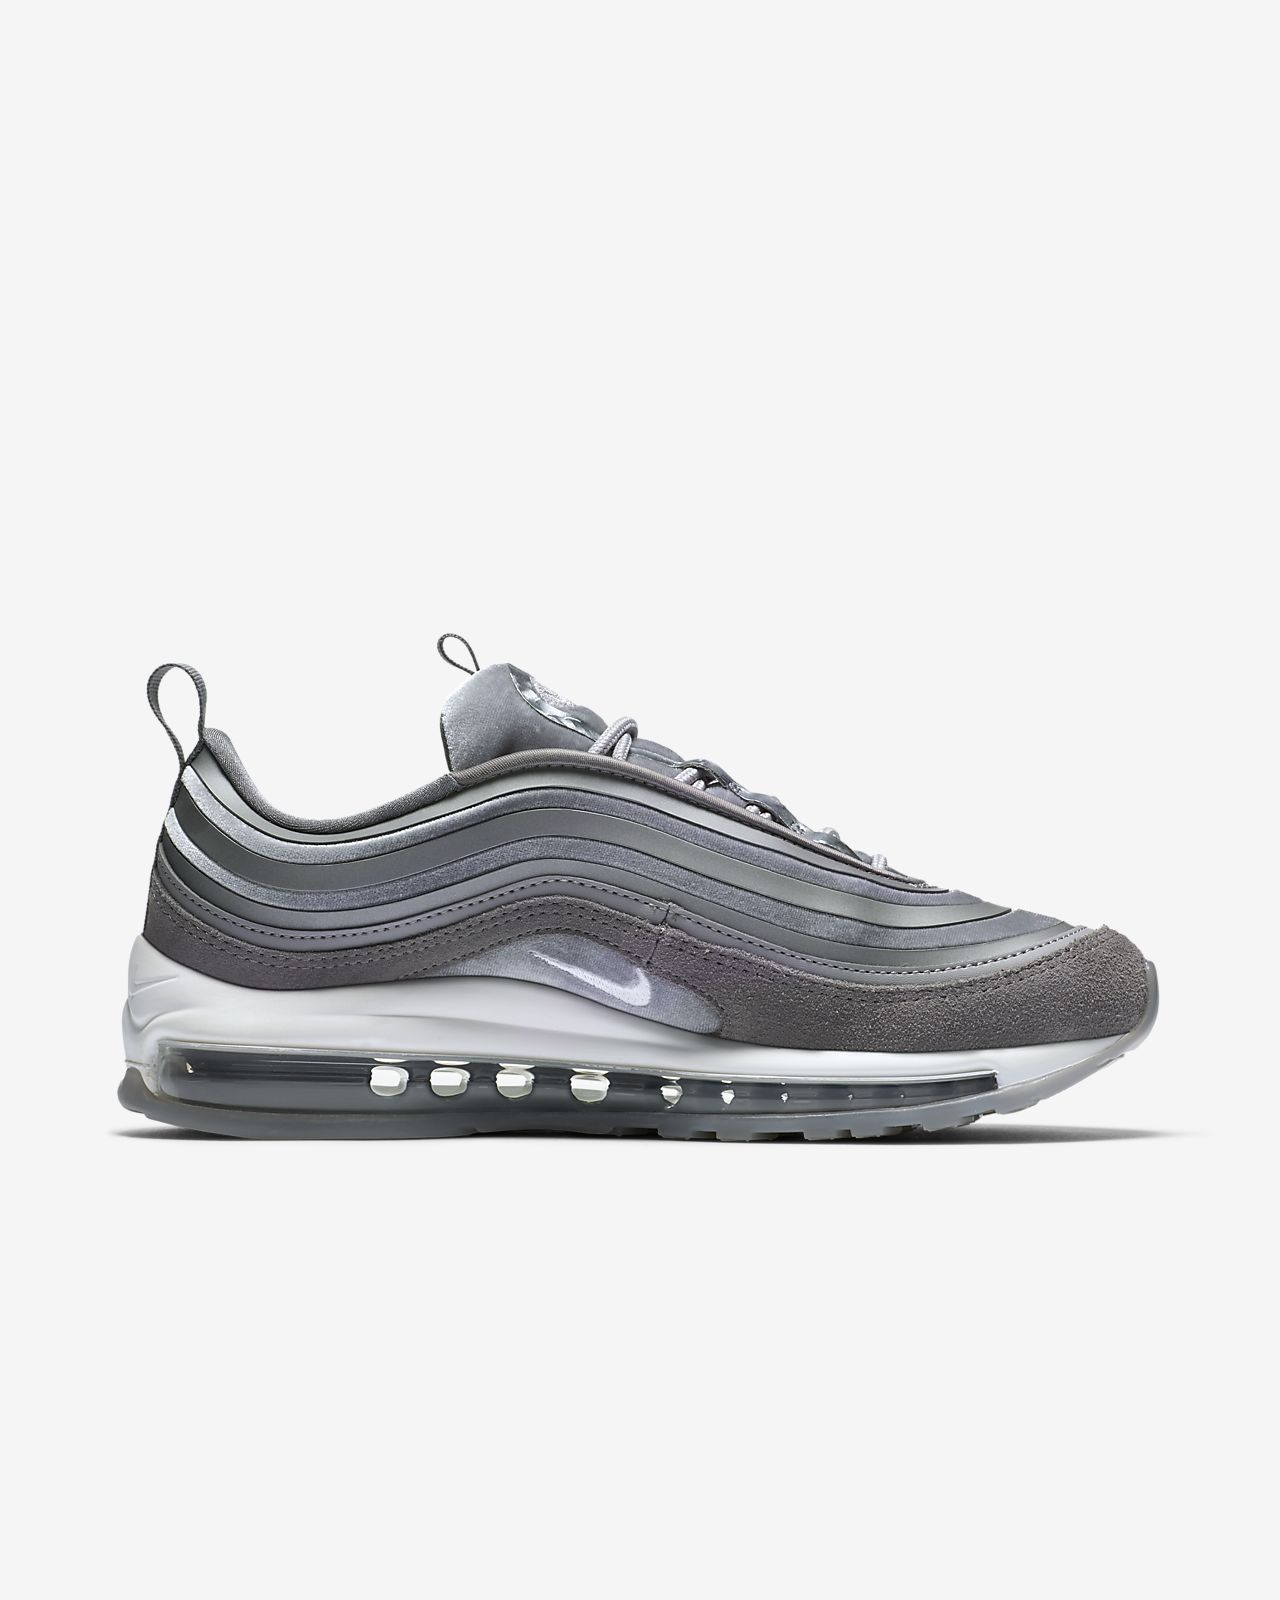 Air Max 97 17 Lx Ultra Villa De Basket jeu best-seller XcRpi3H